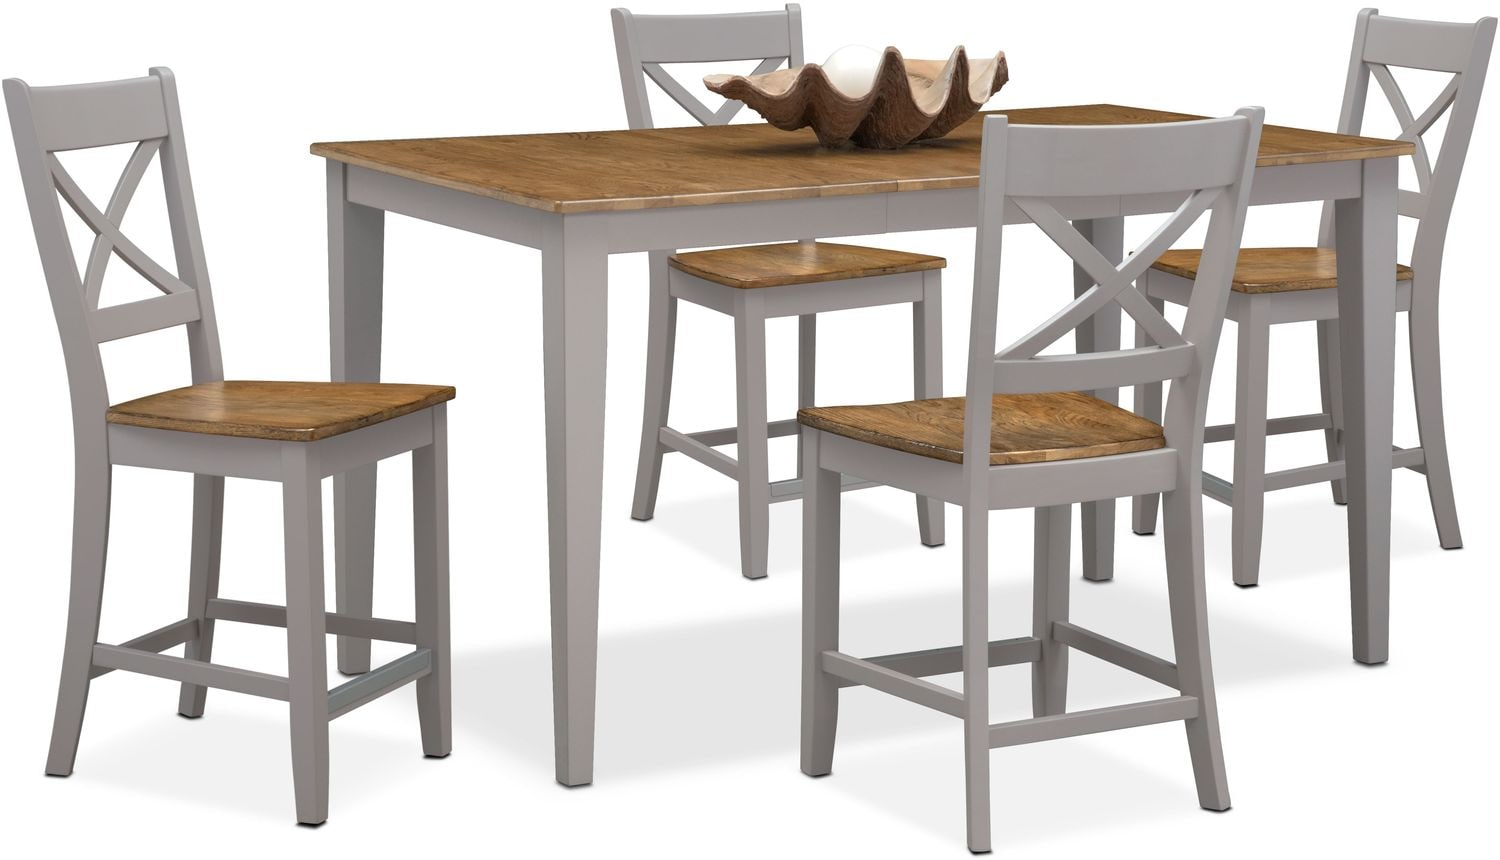 Nantucket Counter-Height Table and 4 X-Back Chairs - Maple